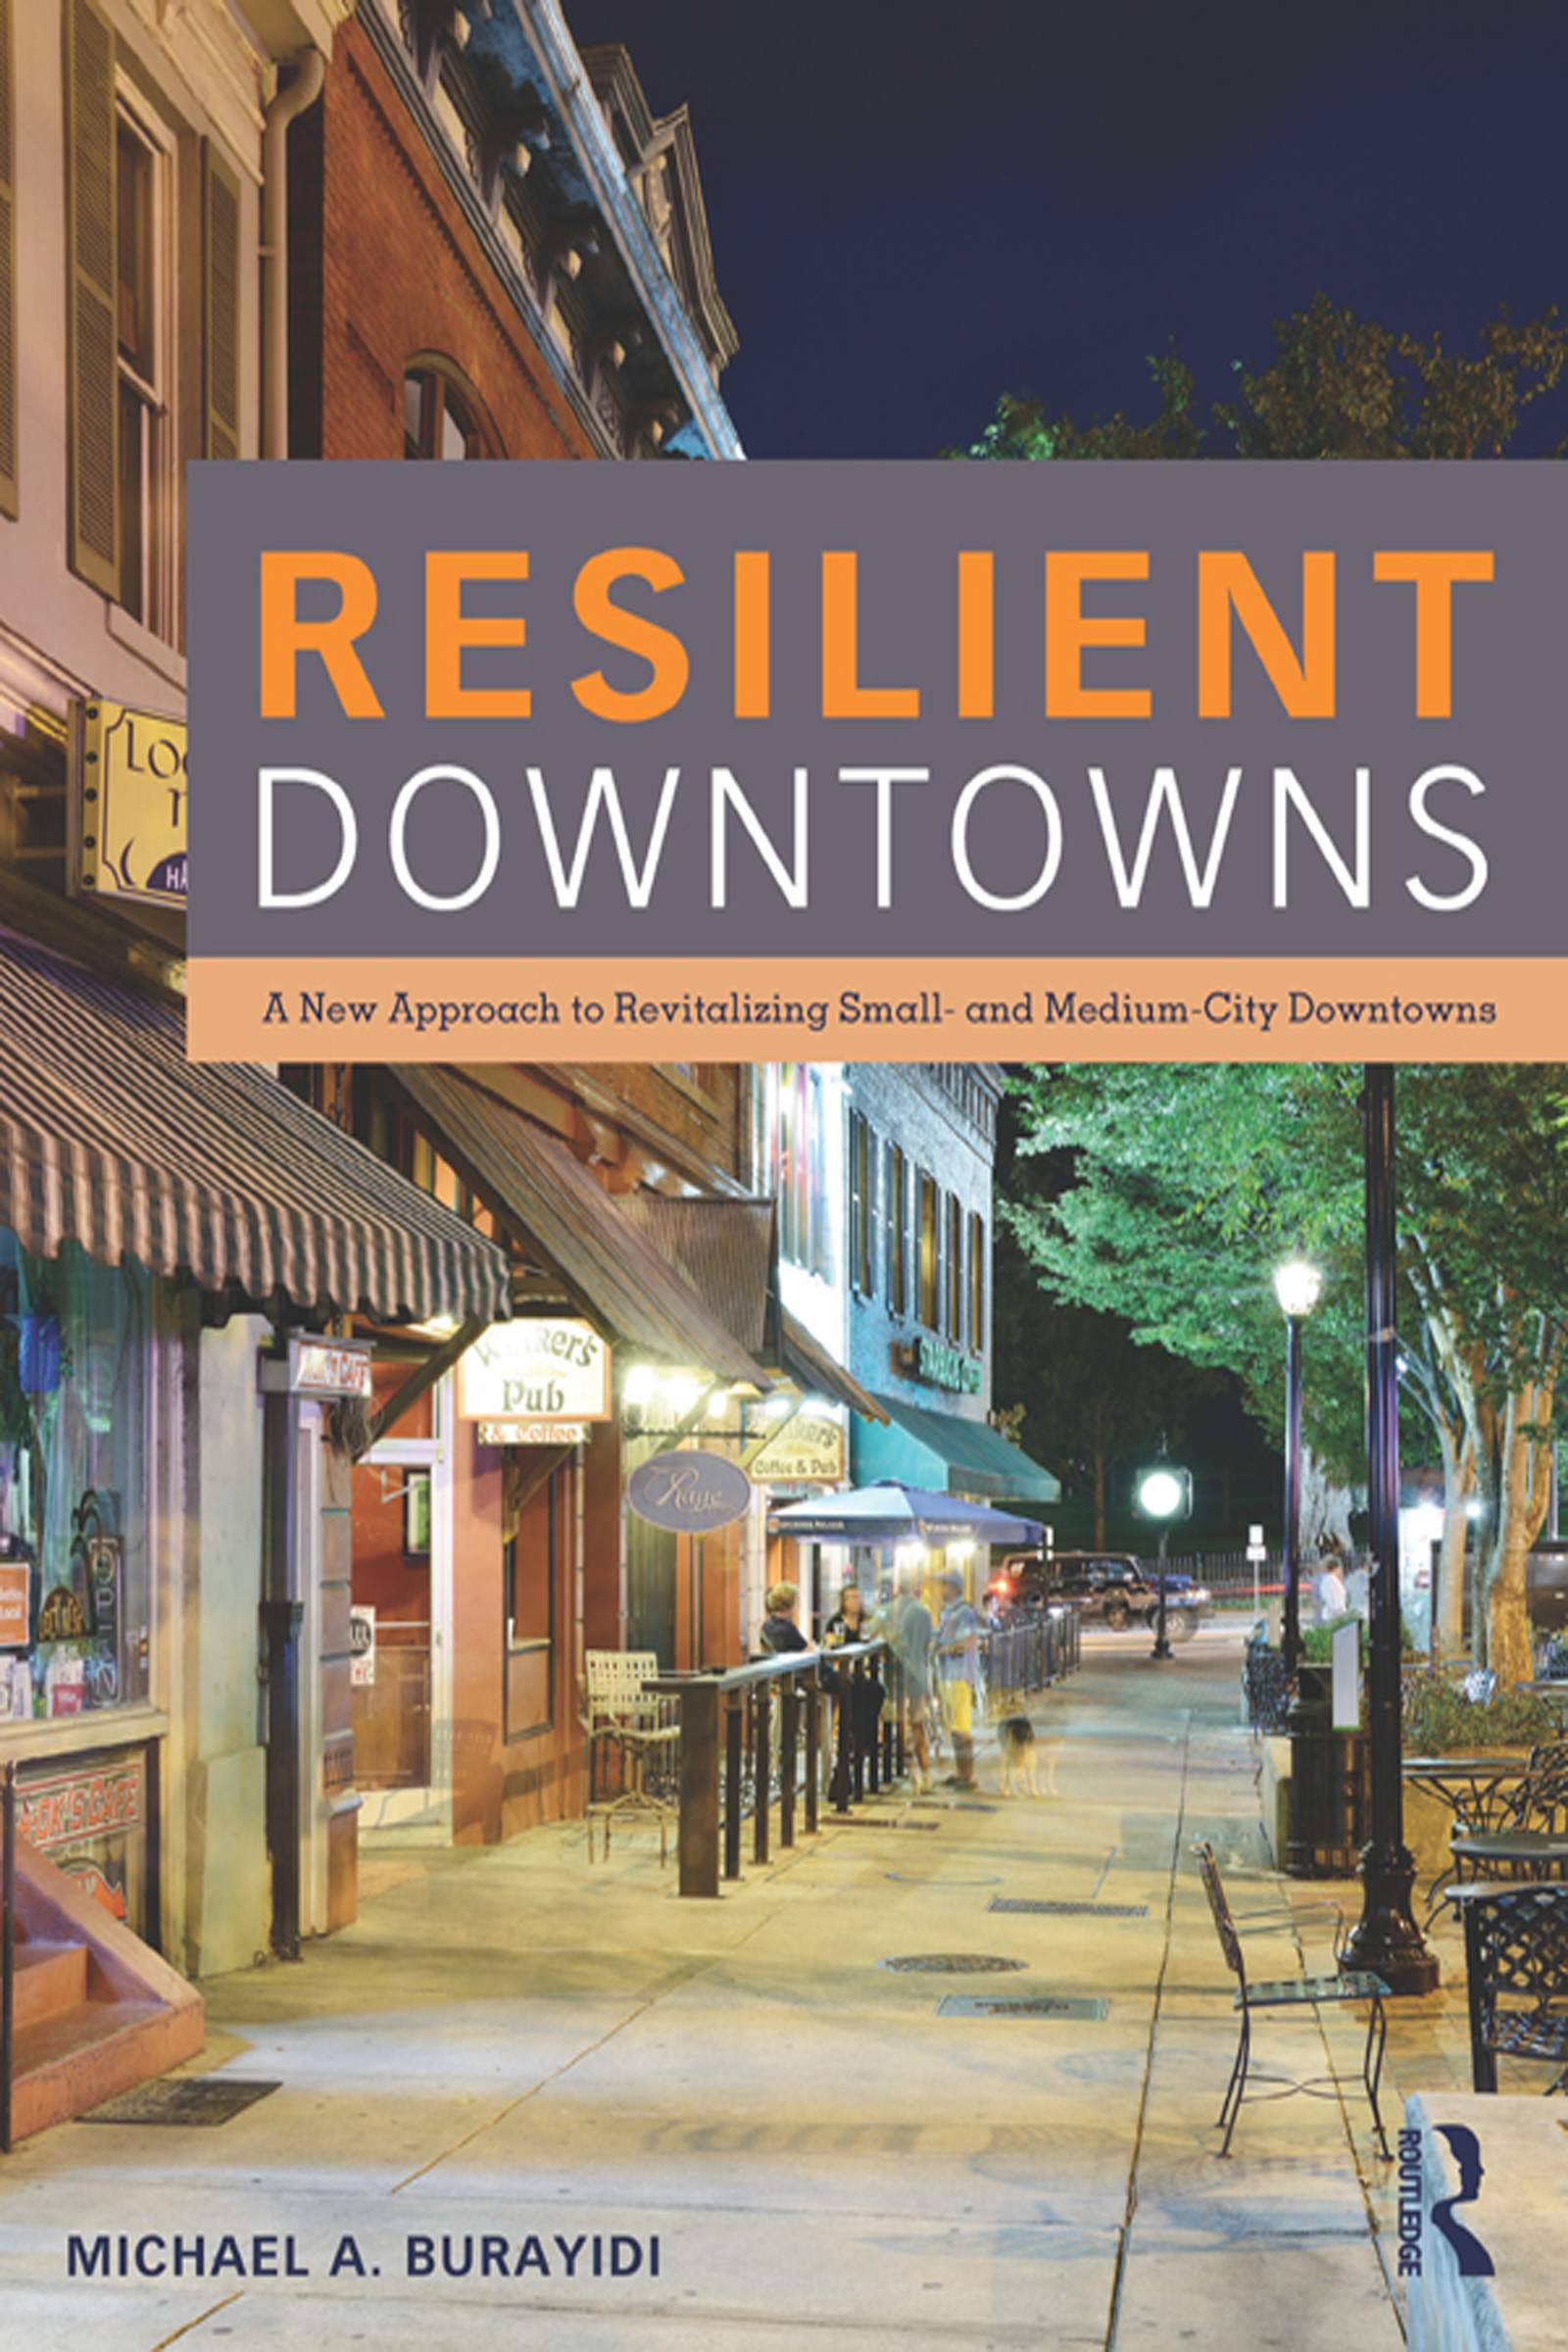 Designing Resilient Downtowns